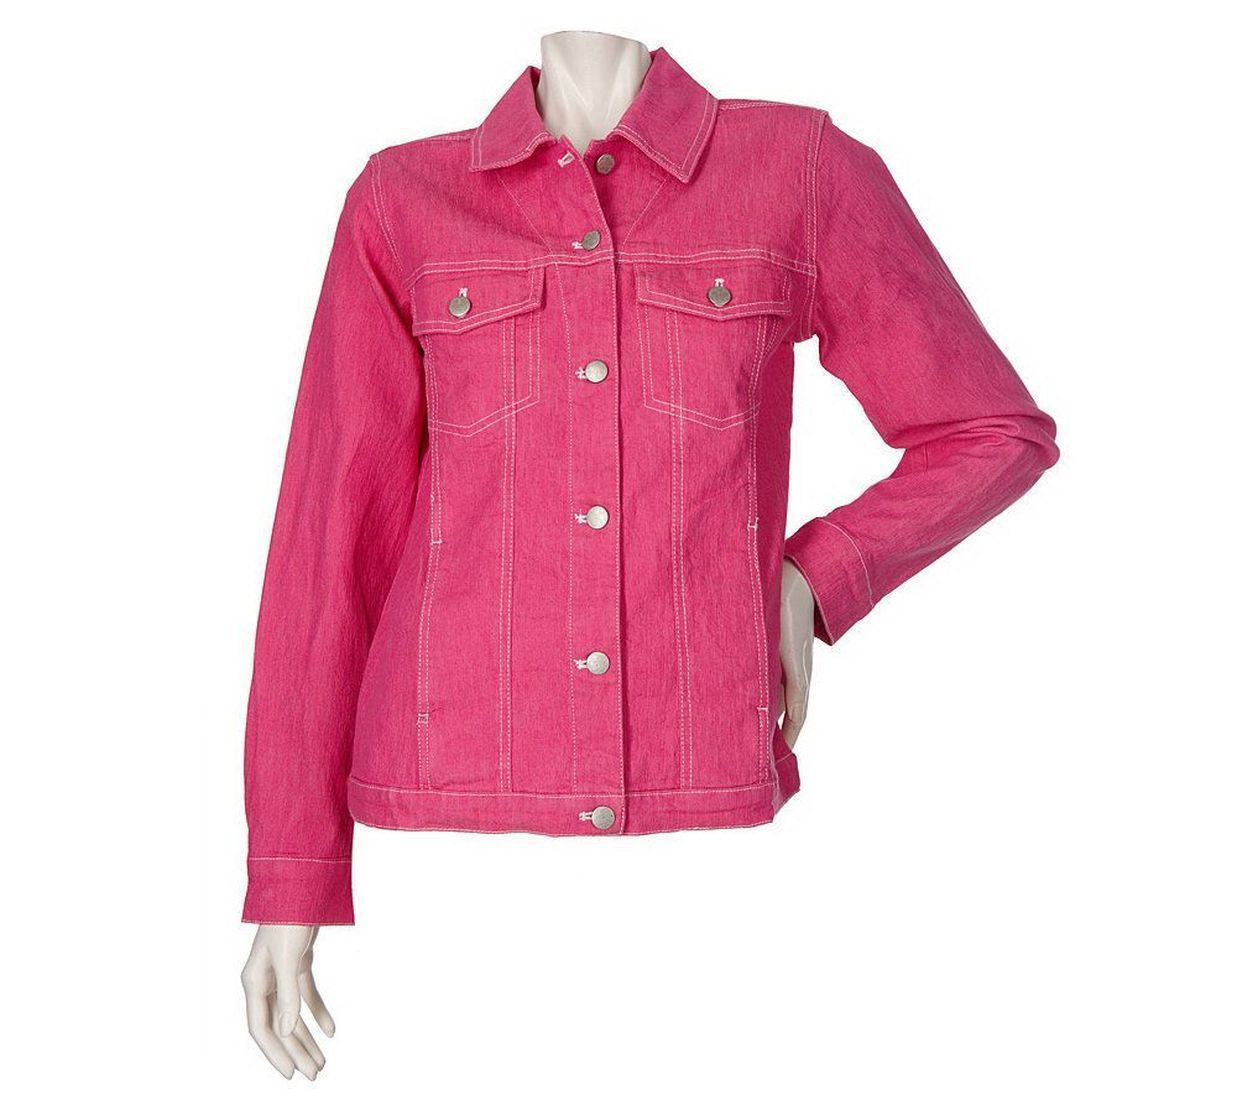 Shop for Colored Denim Jacket at needloanbadcredit.cf Find what you need with our on-trend clothing and designer collaborations. Free in-store shipping & returns.